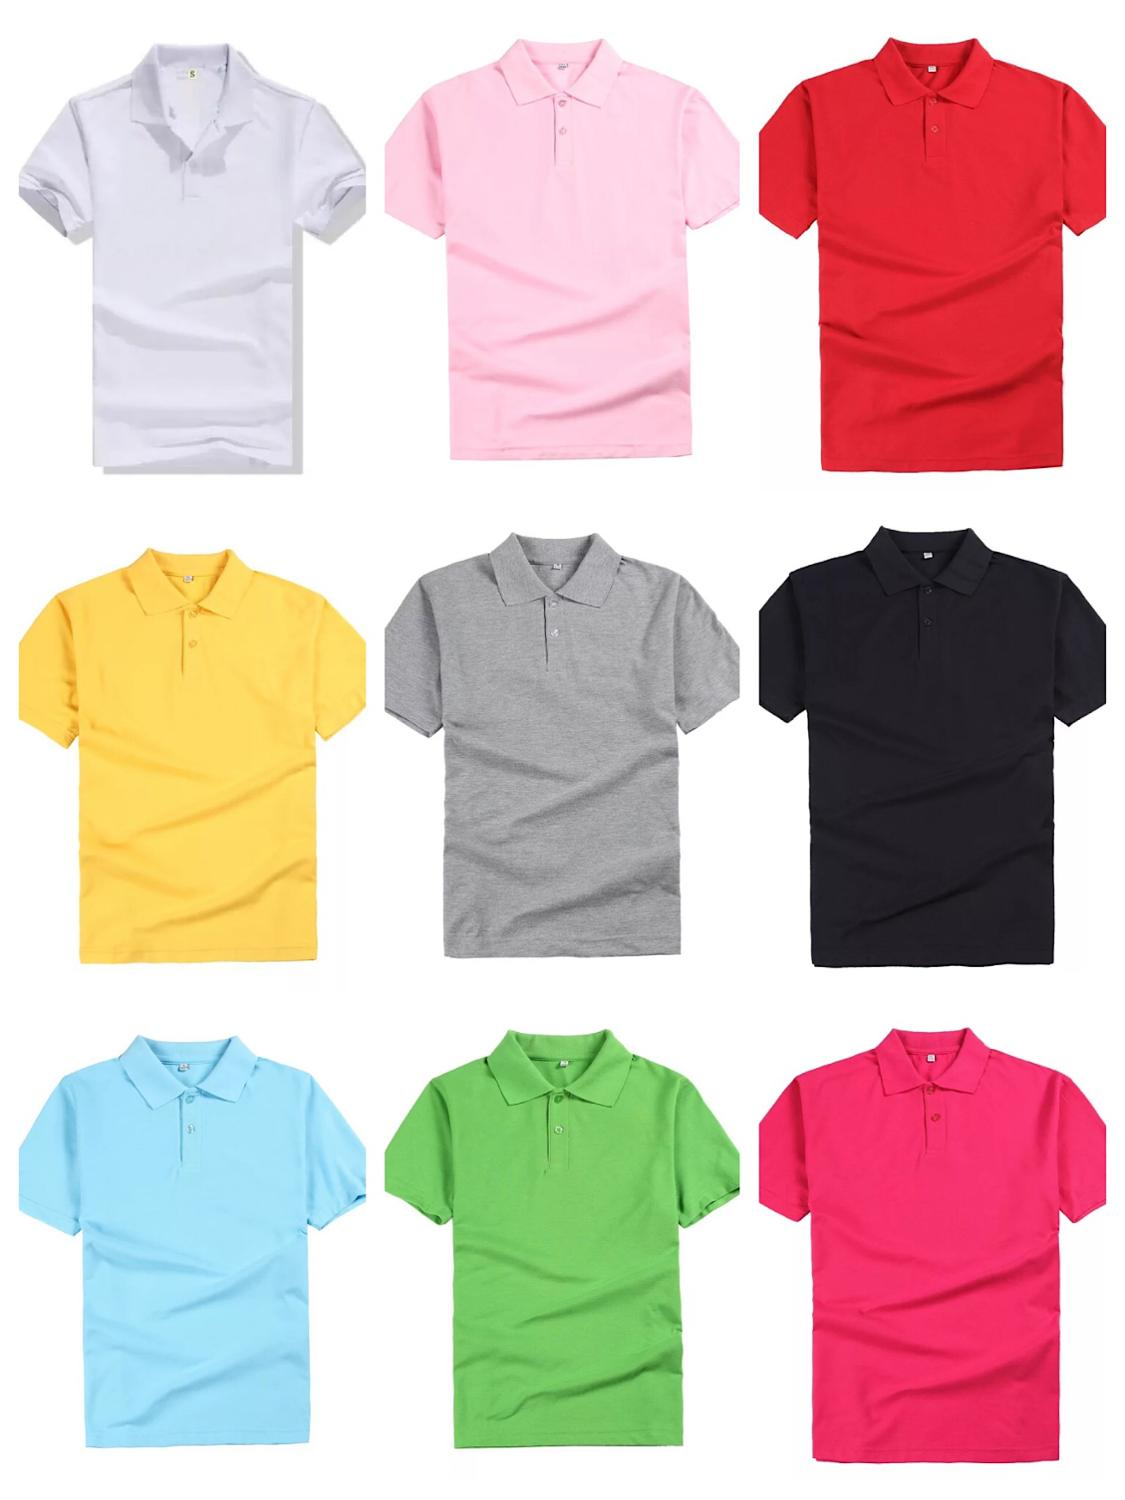 men's and women's polo shirts overalls casual  cotton overalls 12 color  polo shirts with short sleeves can custom name logo